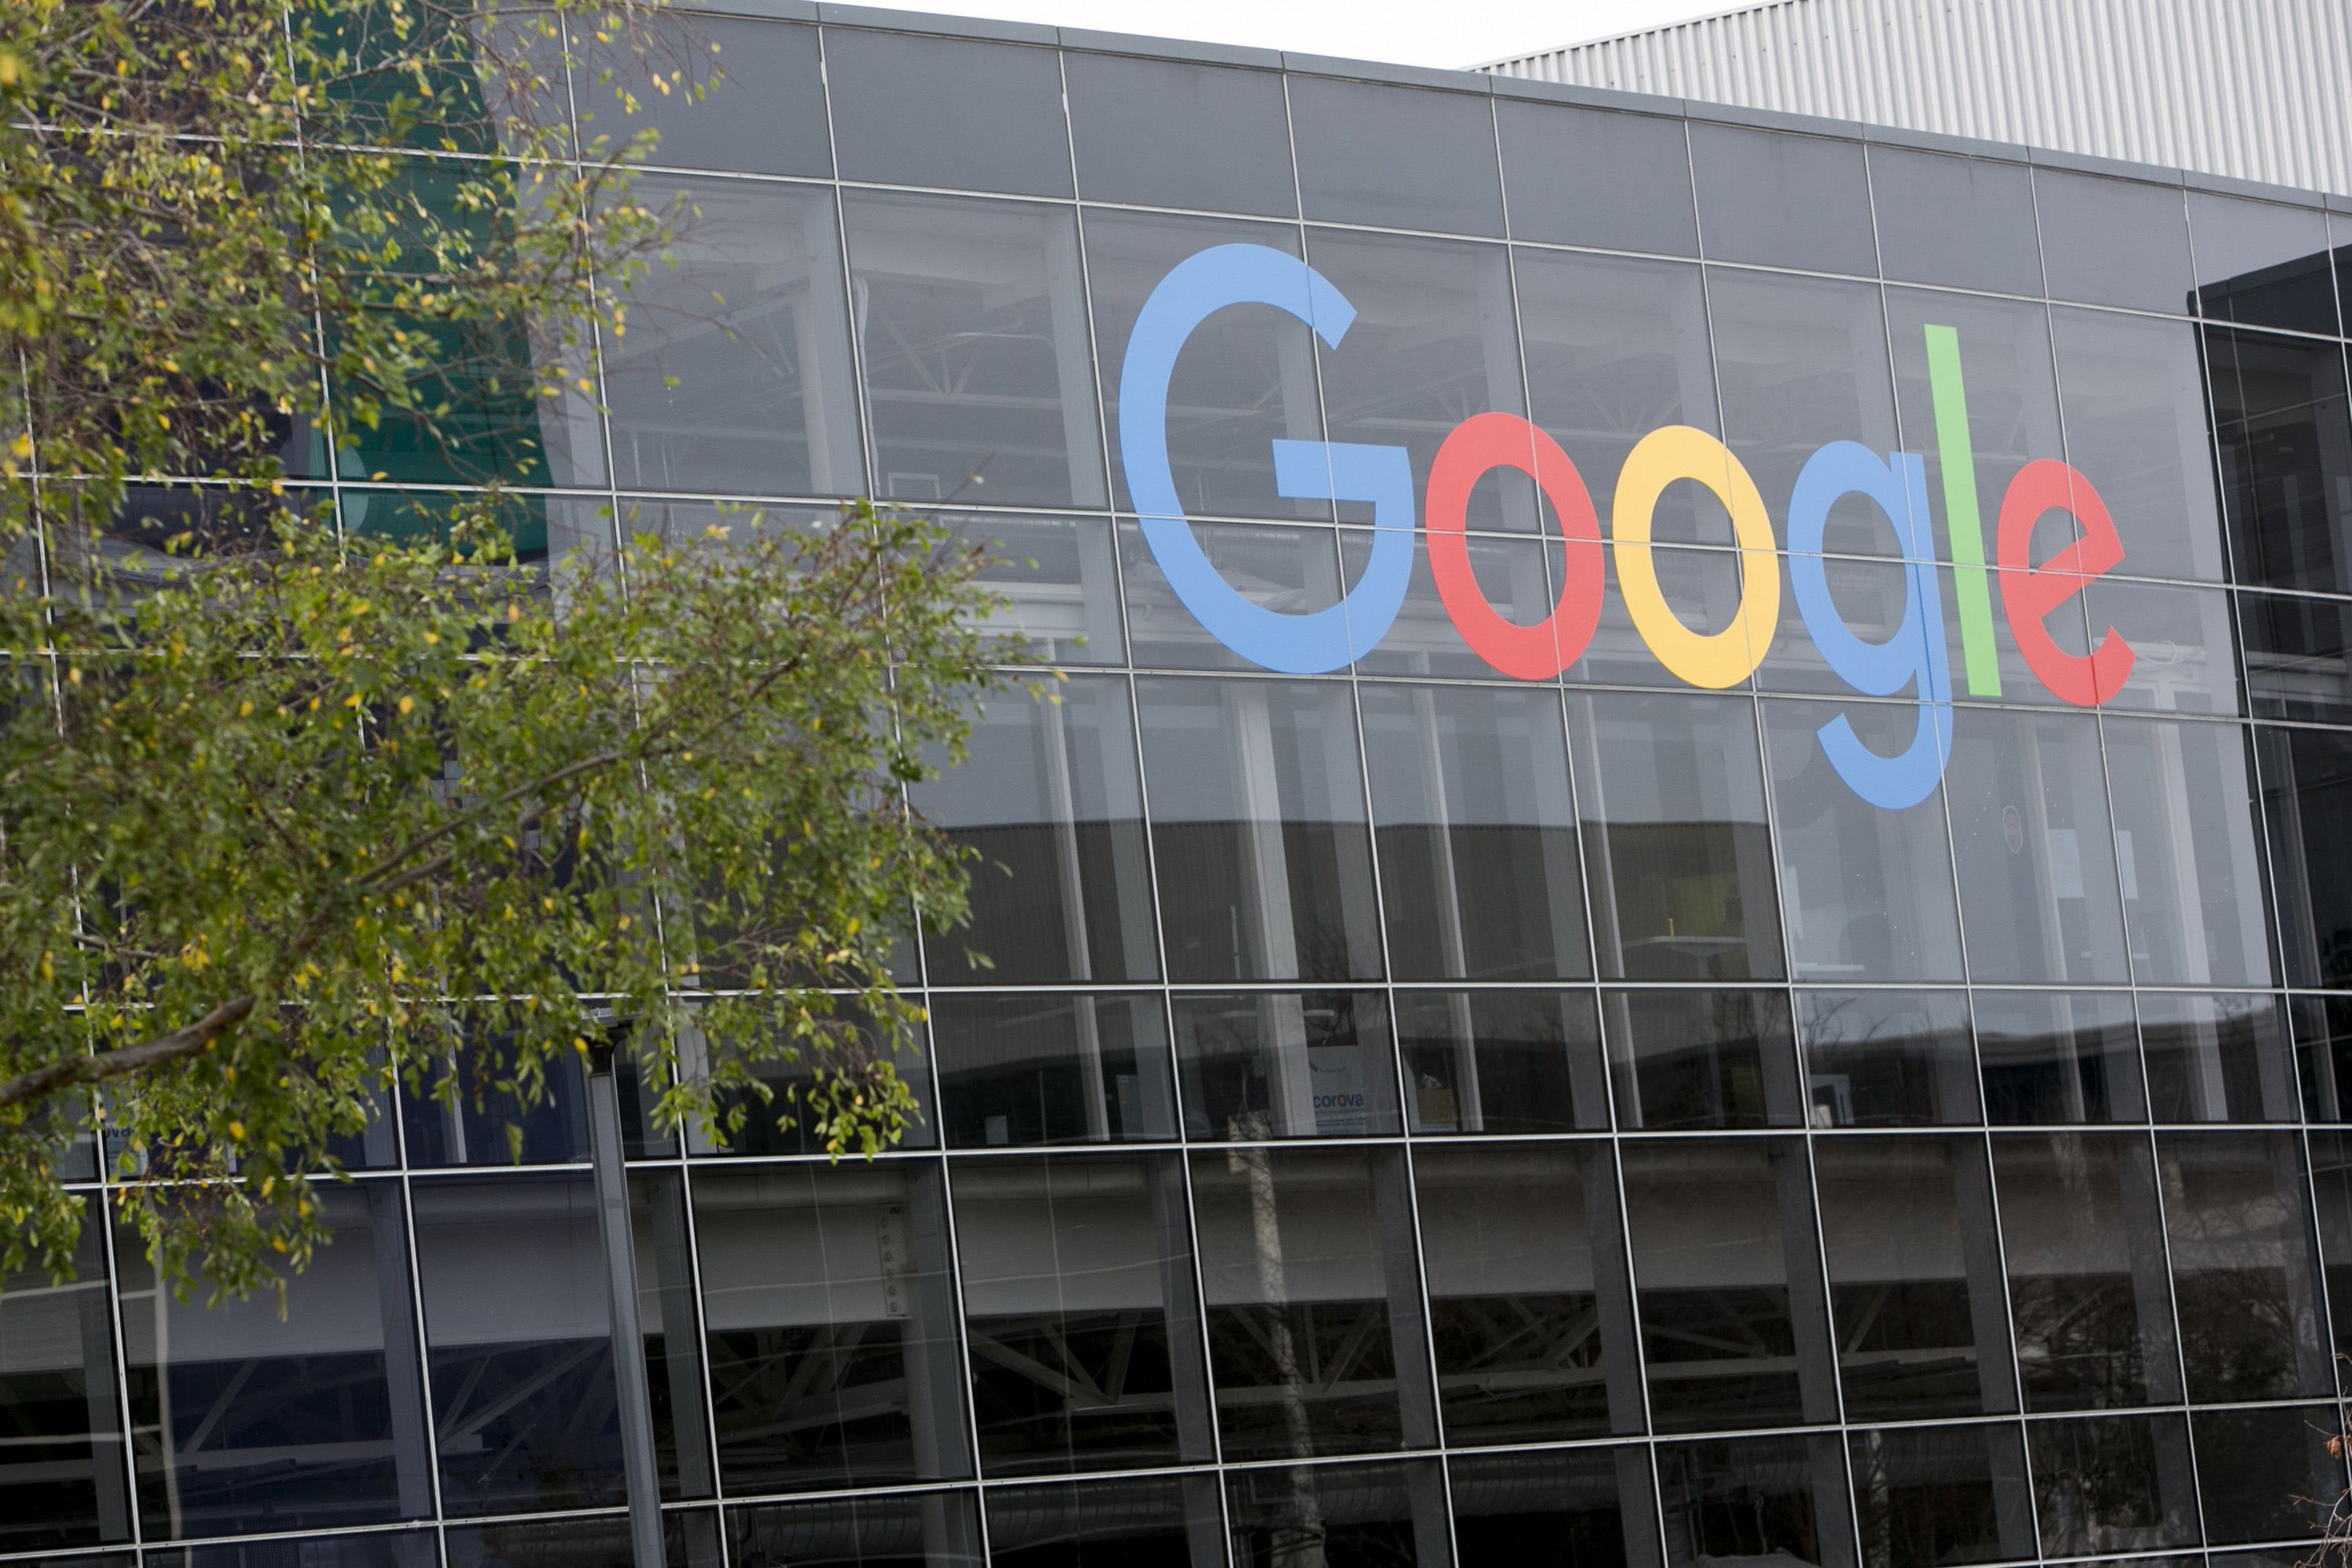 A logo sign outside of the headquarters of Google on Jan. 24, 2016 in Mountain View, Calif. (Kristoffer Tripplaar/Sipa USA/TNS)